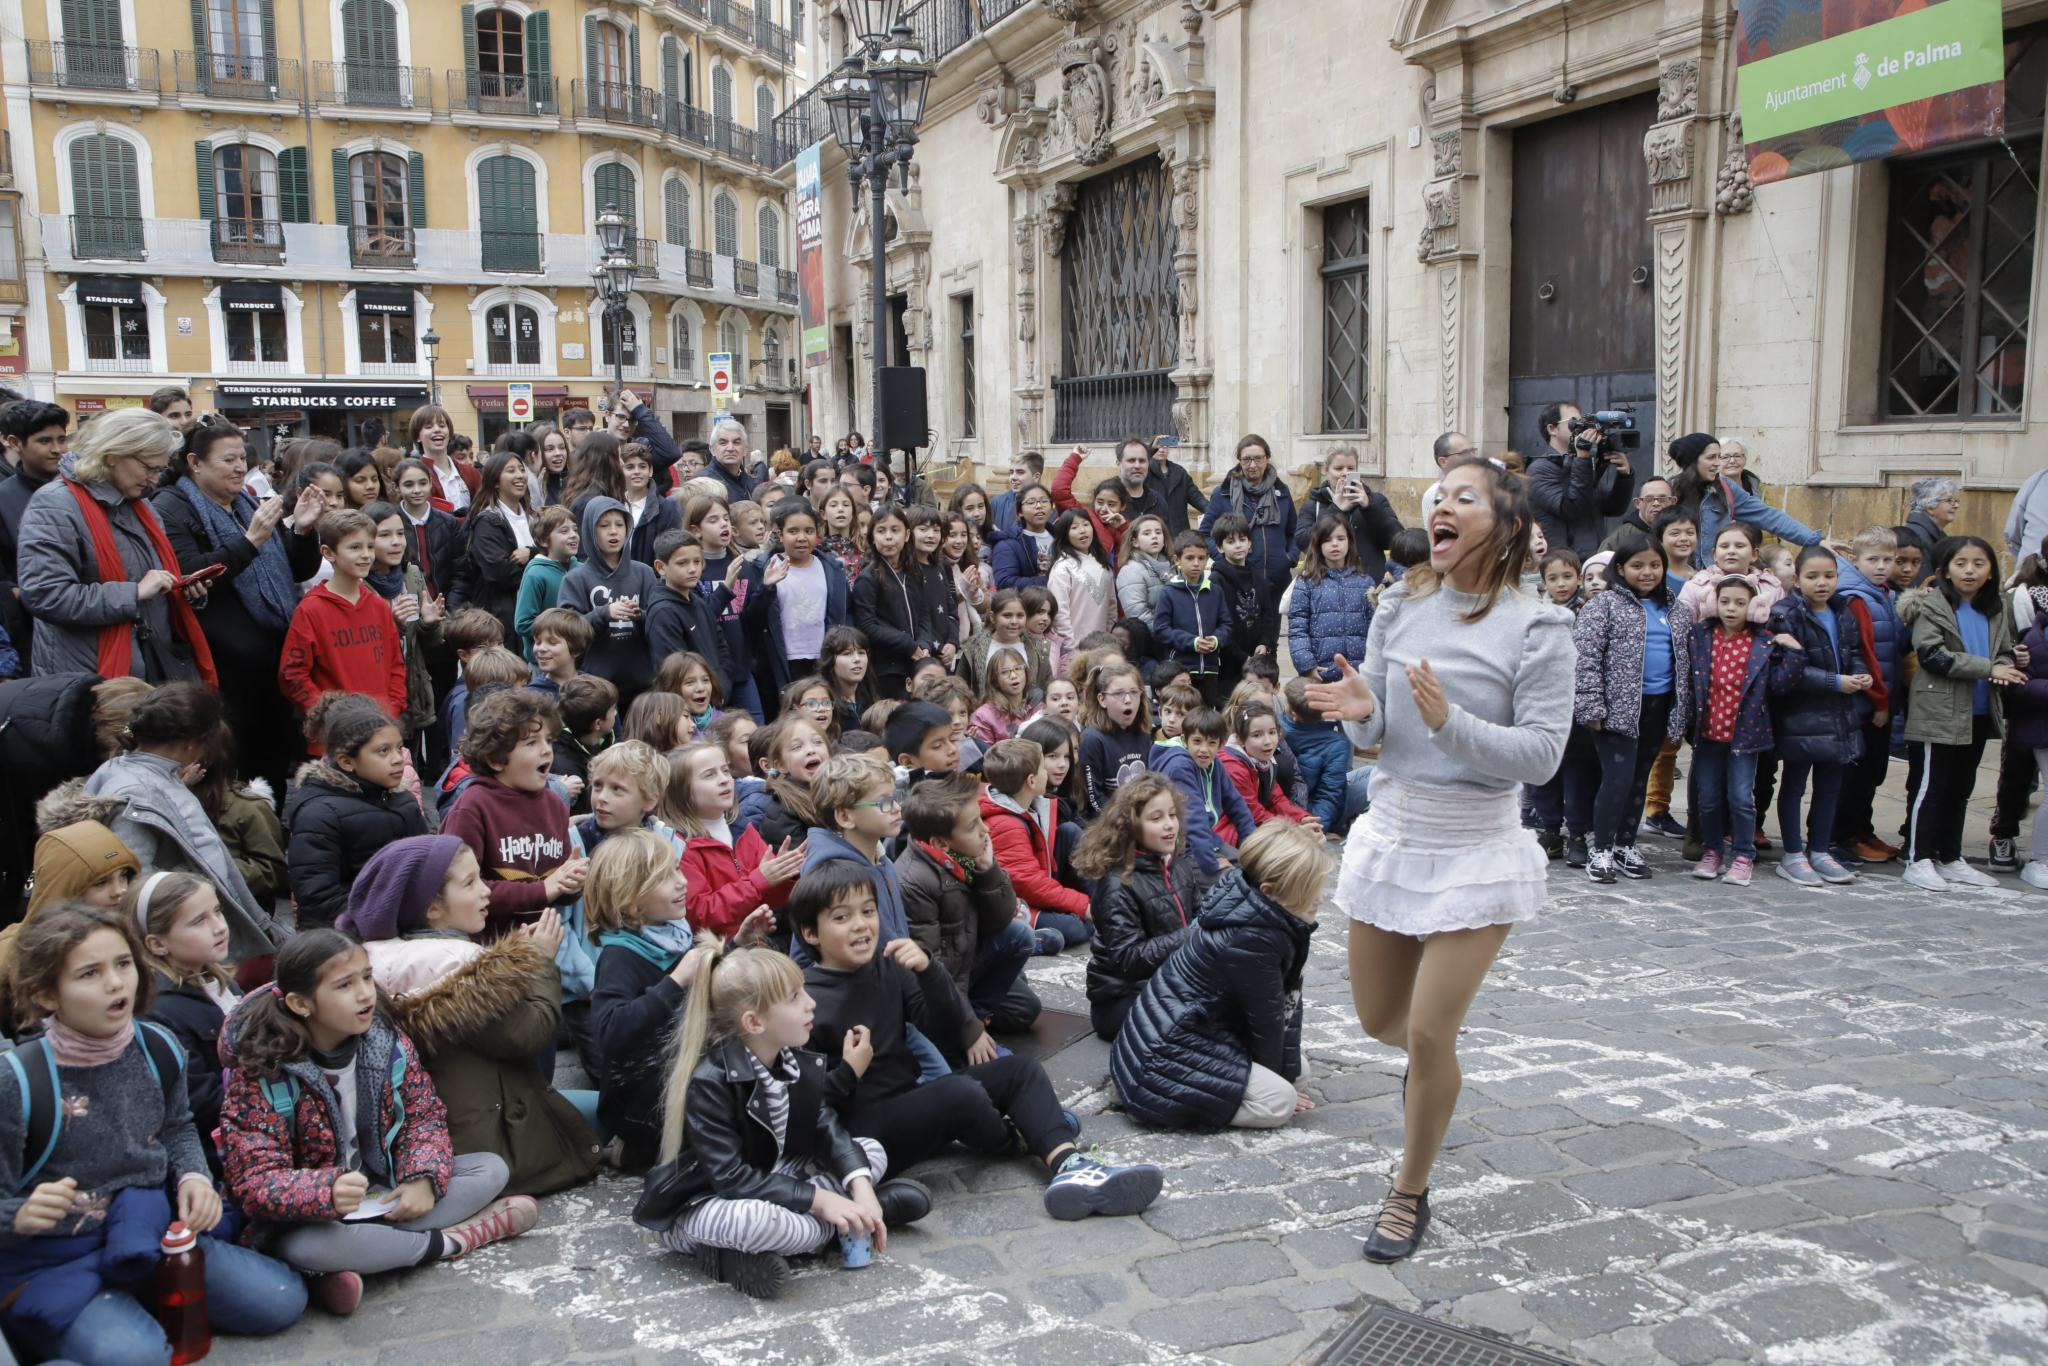 Climate change awareness for the children of Majorca